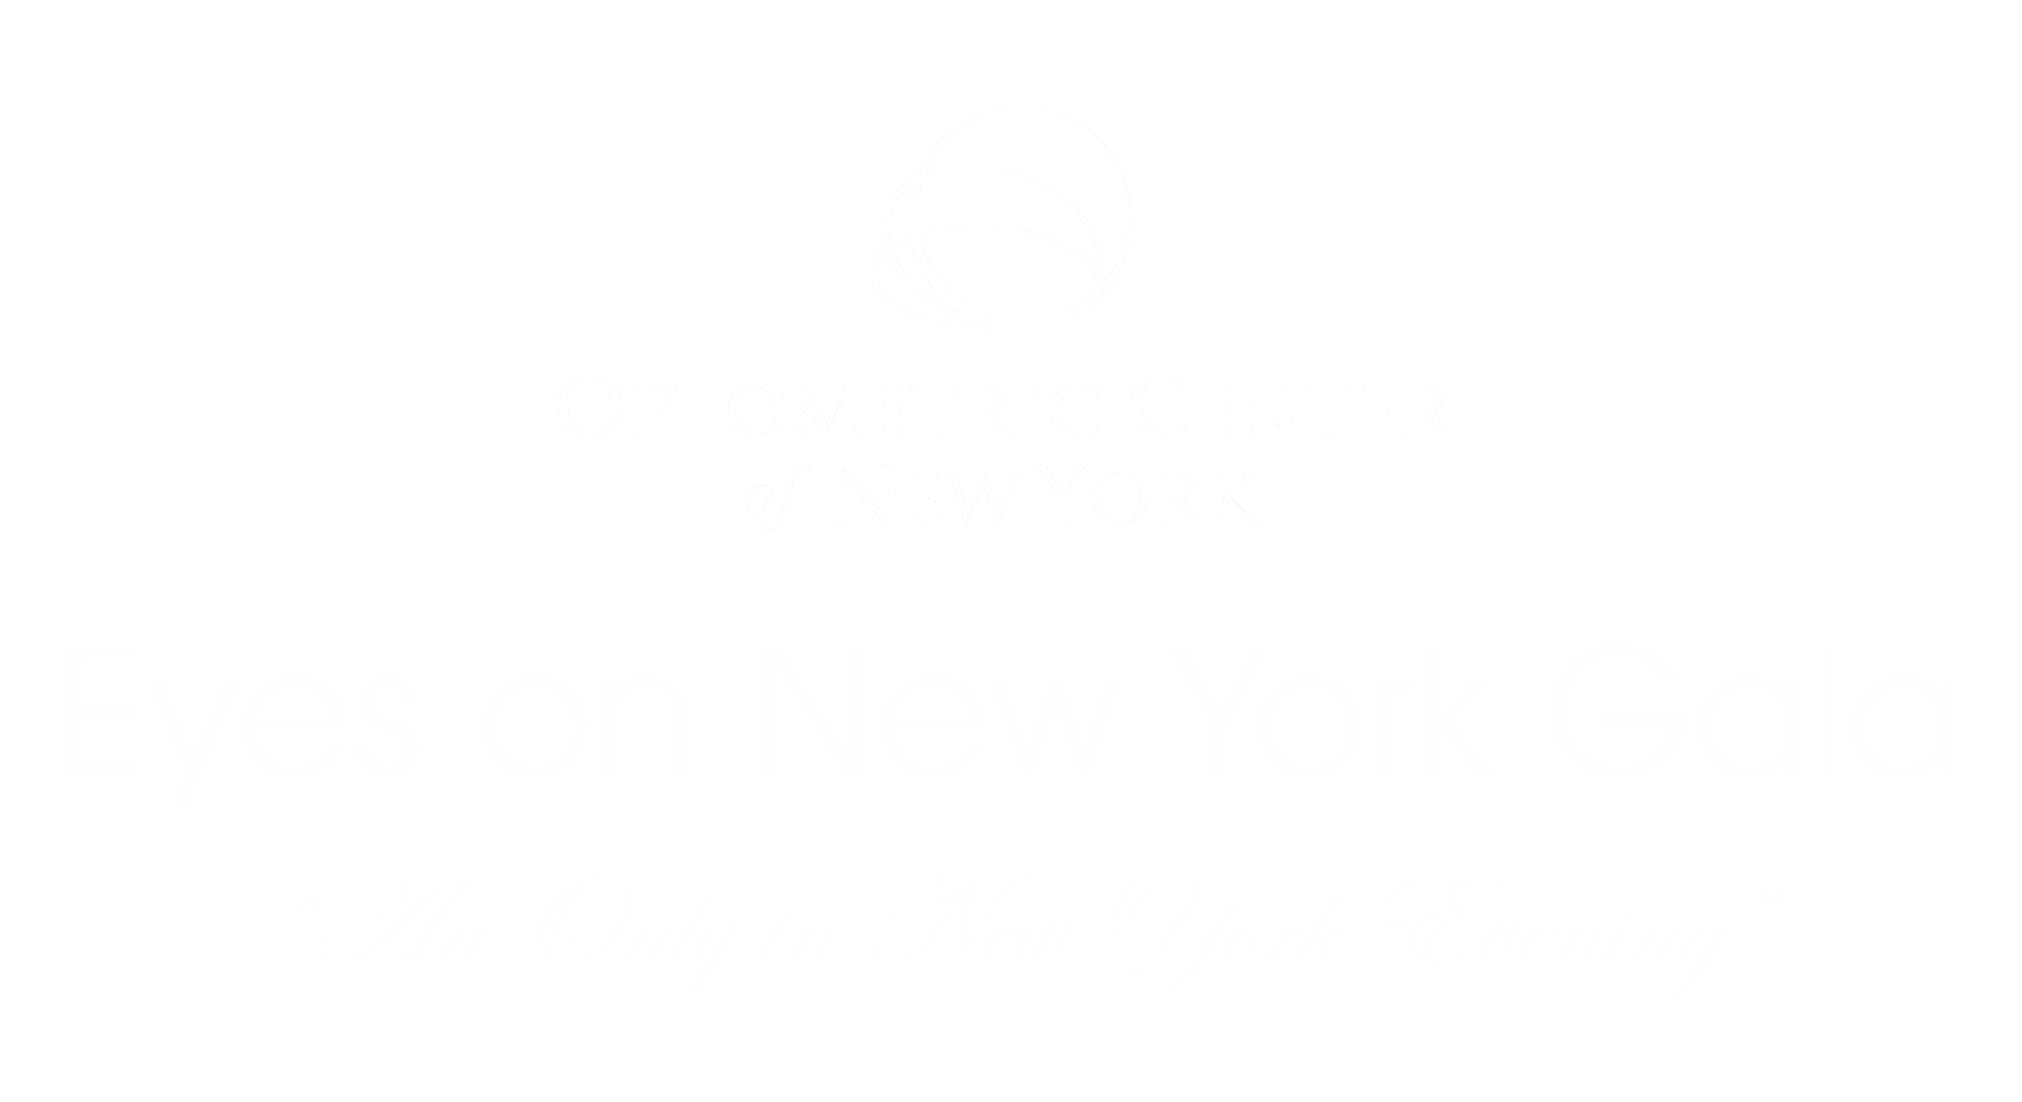 13th ANNUAL EYES ON NEW YORK GALA